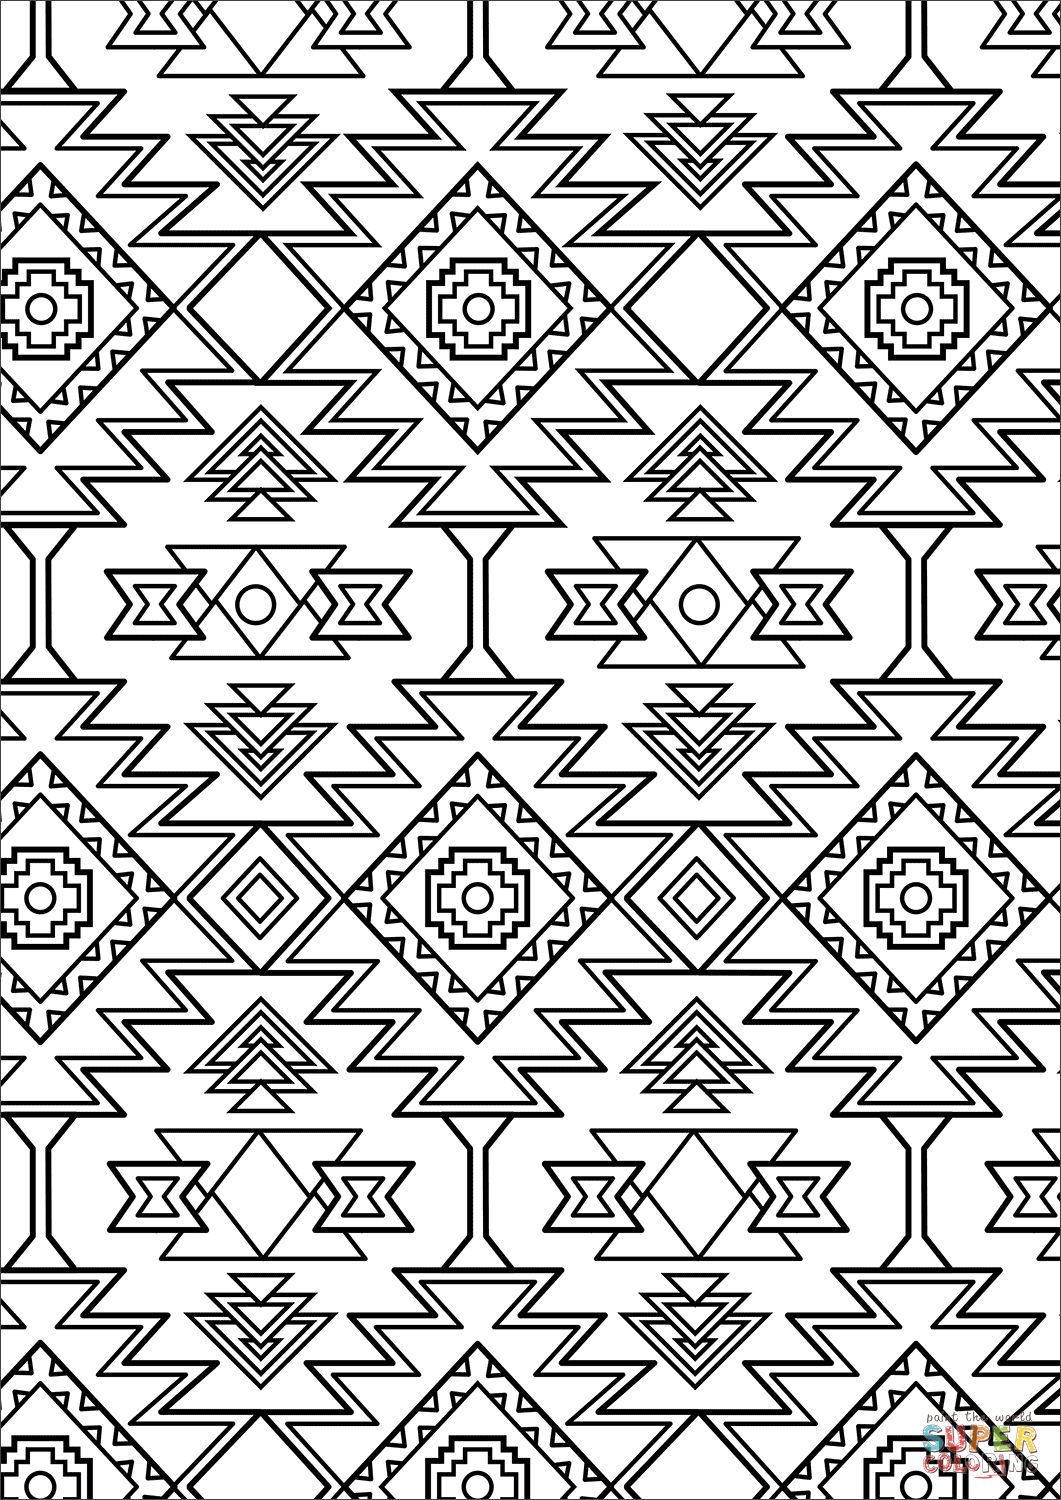 aztec pictures to colour images aztec warrior coloring pages coloring pages pictures aztec colour to